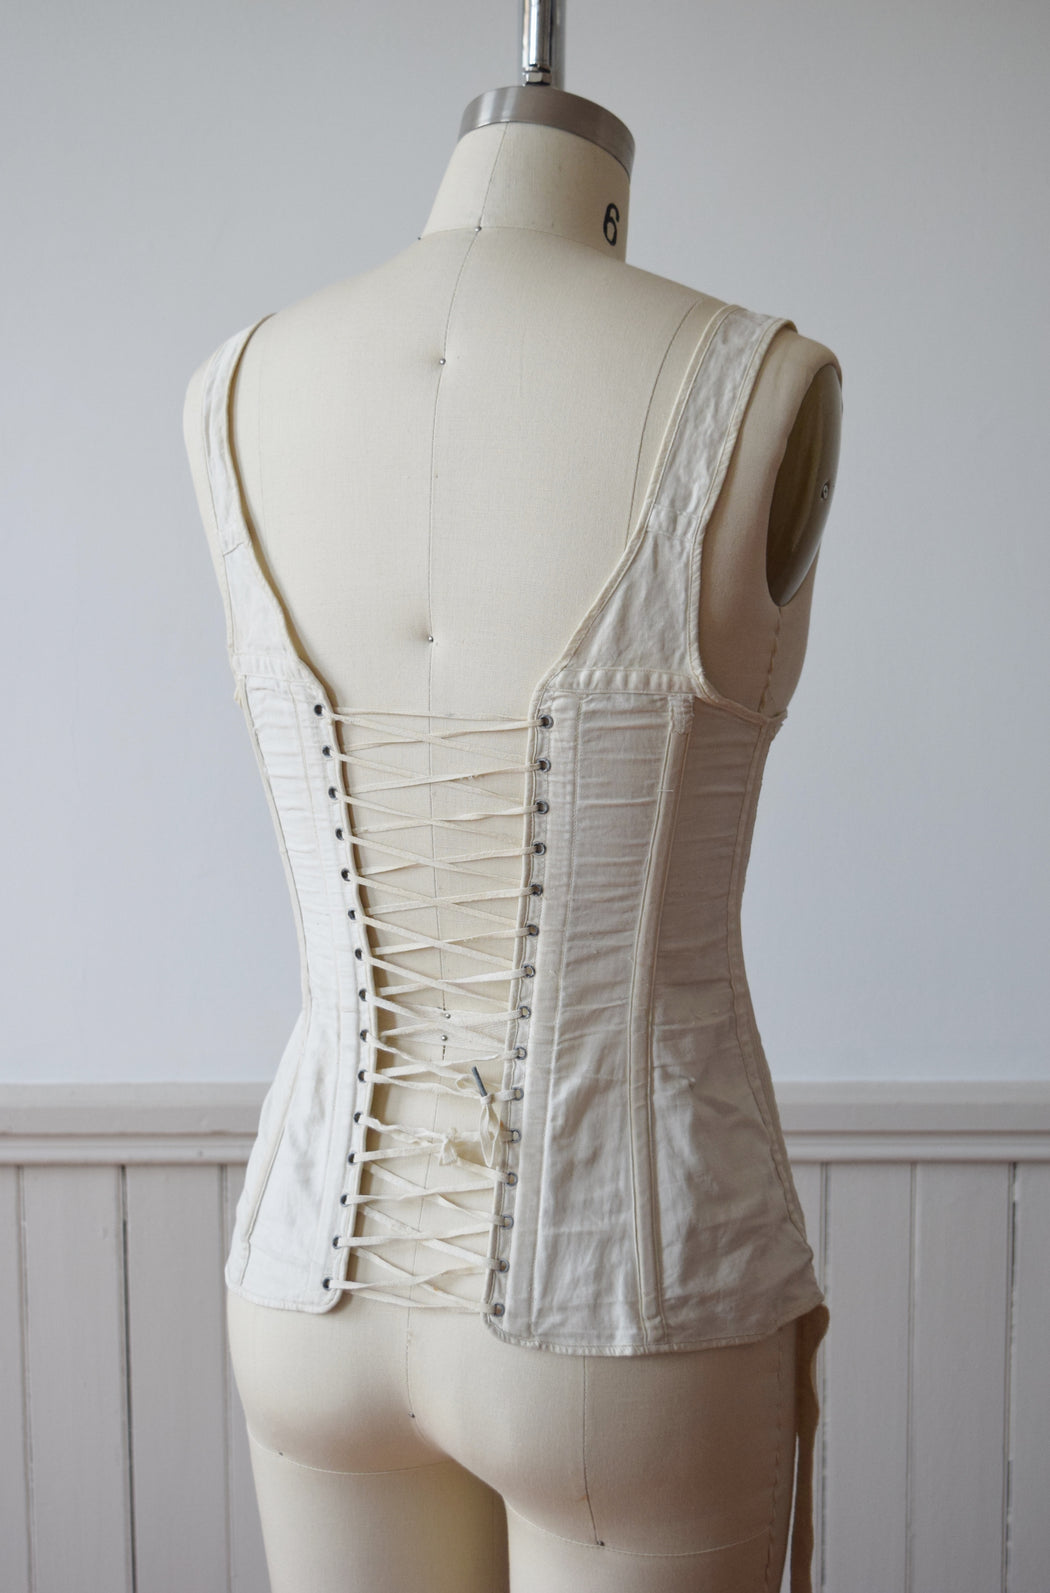 Antique Edwardian Era Corset Waist by Ferris Bros. | XXS-XS